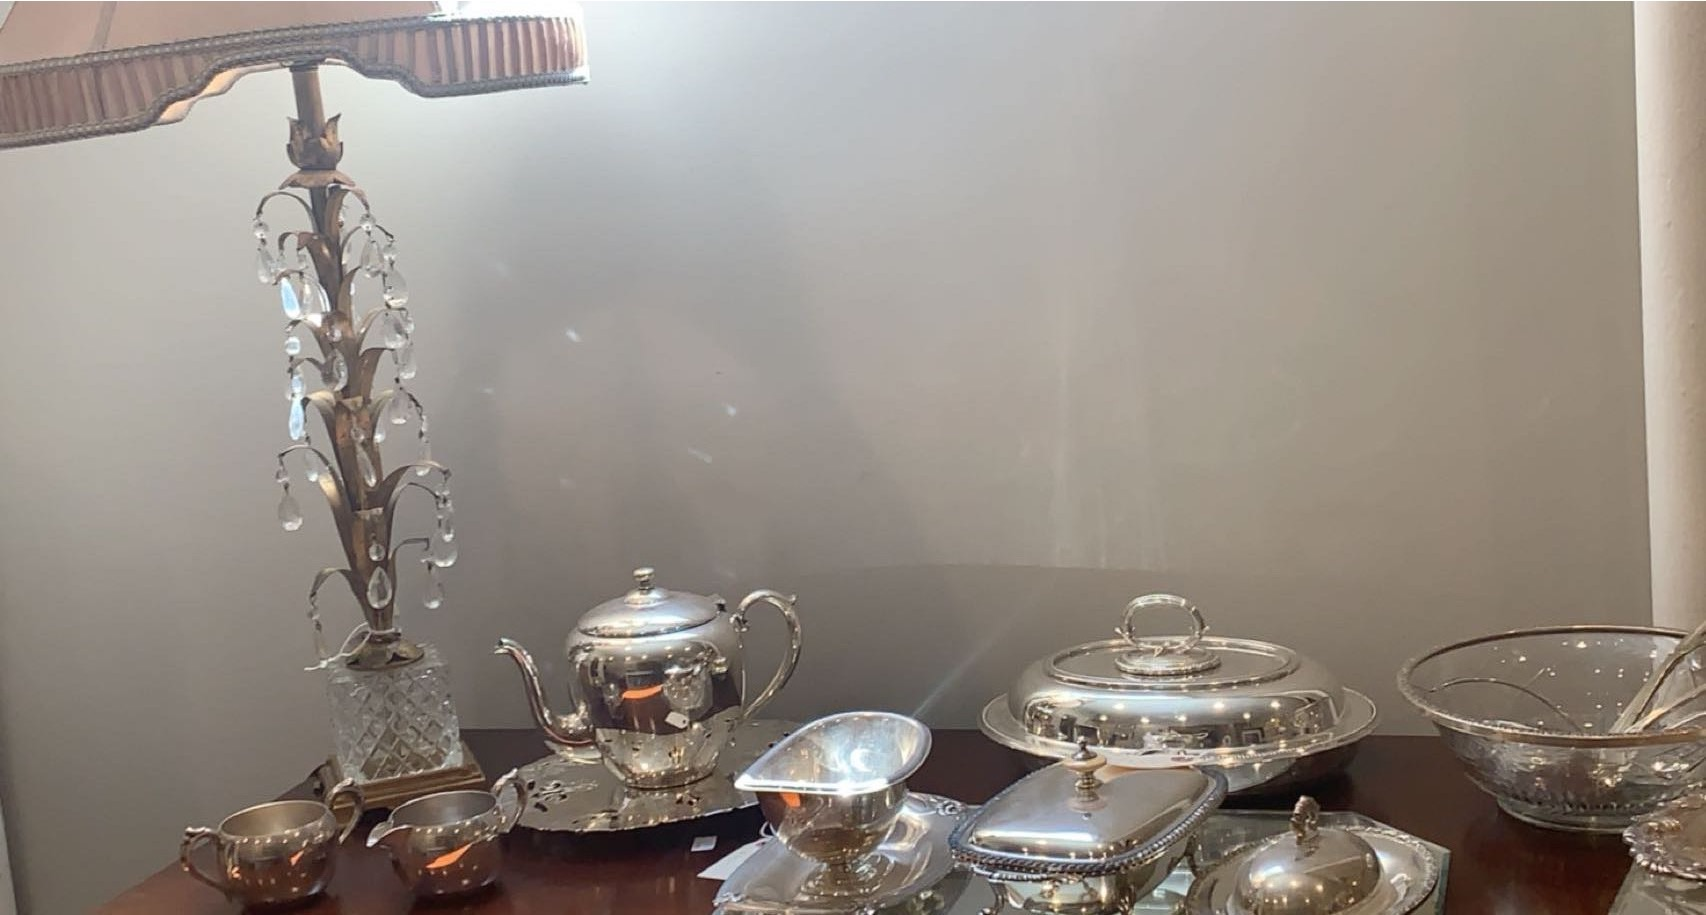 Photo of a silver teapot on a counter. Photo taken by Justis Porter.